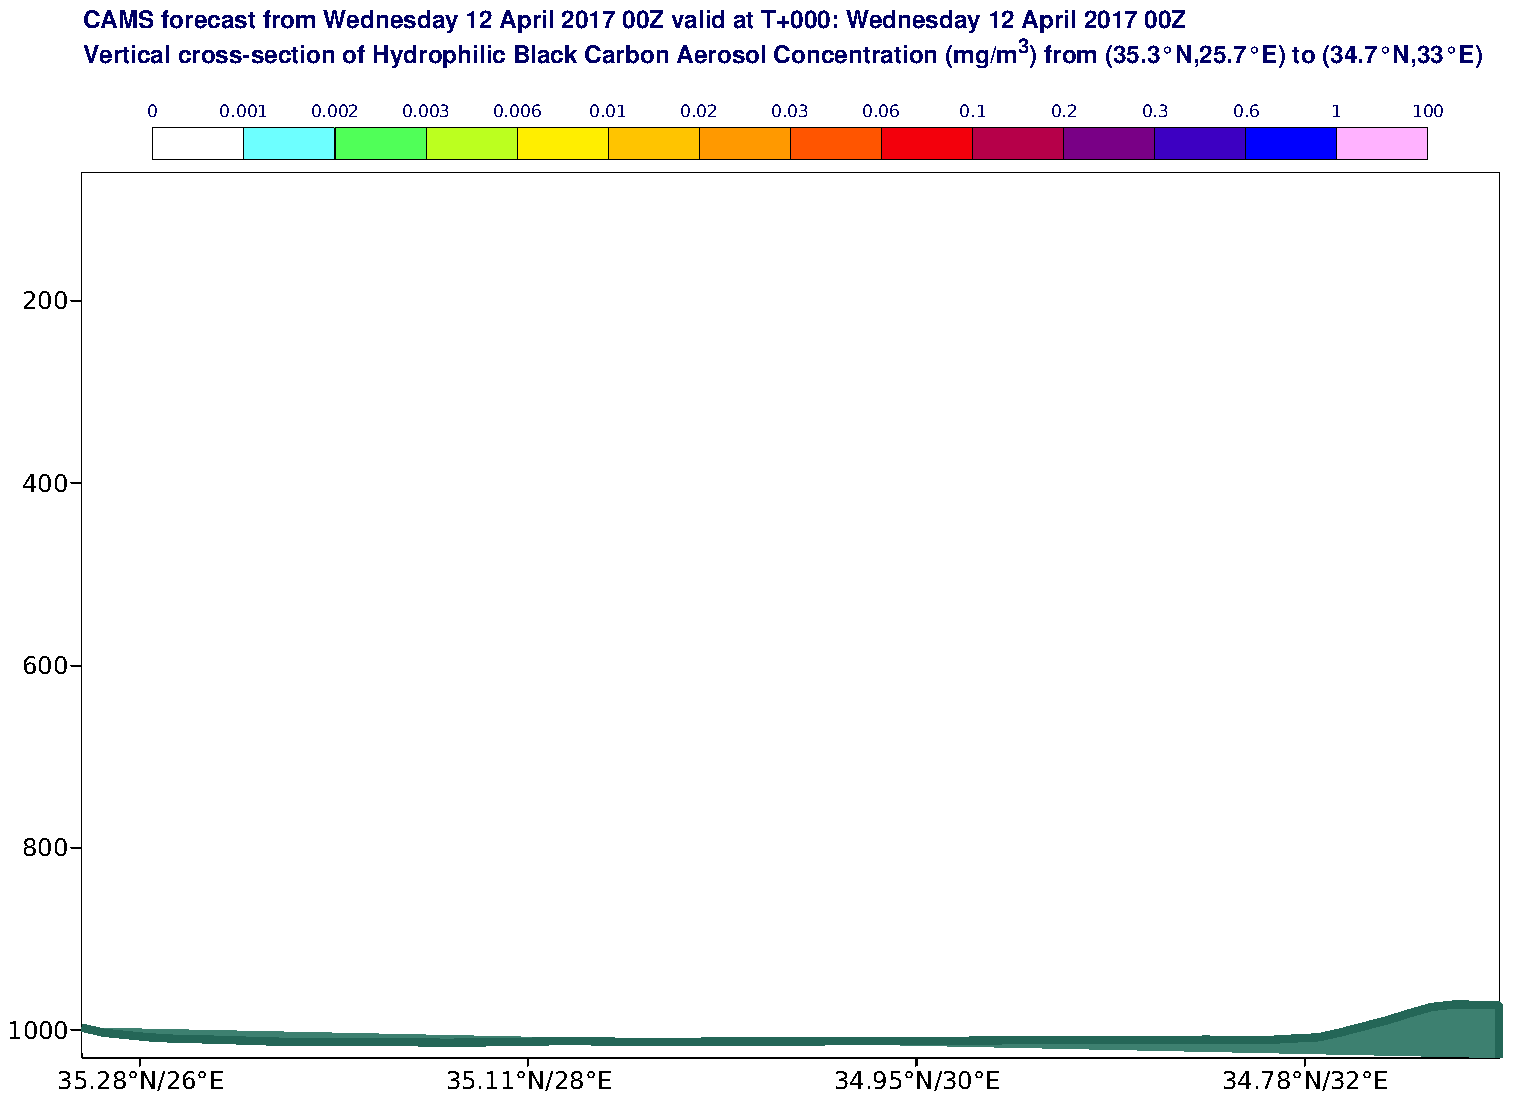 Vertical cross-section of Hydrophilic Black Carbon Aerosol Concentration (mg/m3) valid at T0 - 2017-04-12 00:00